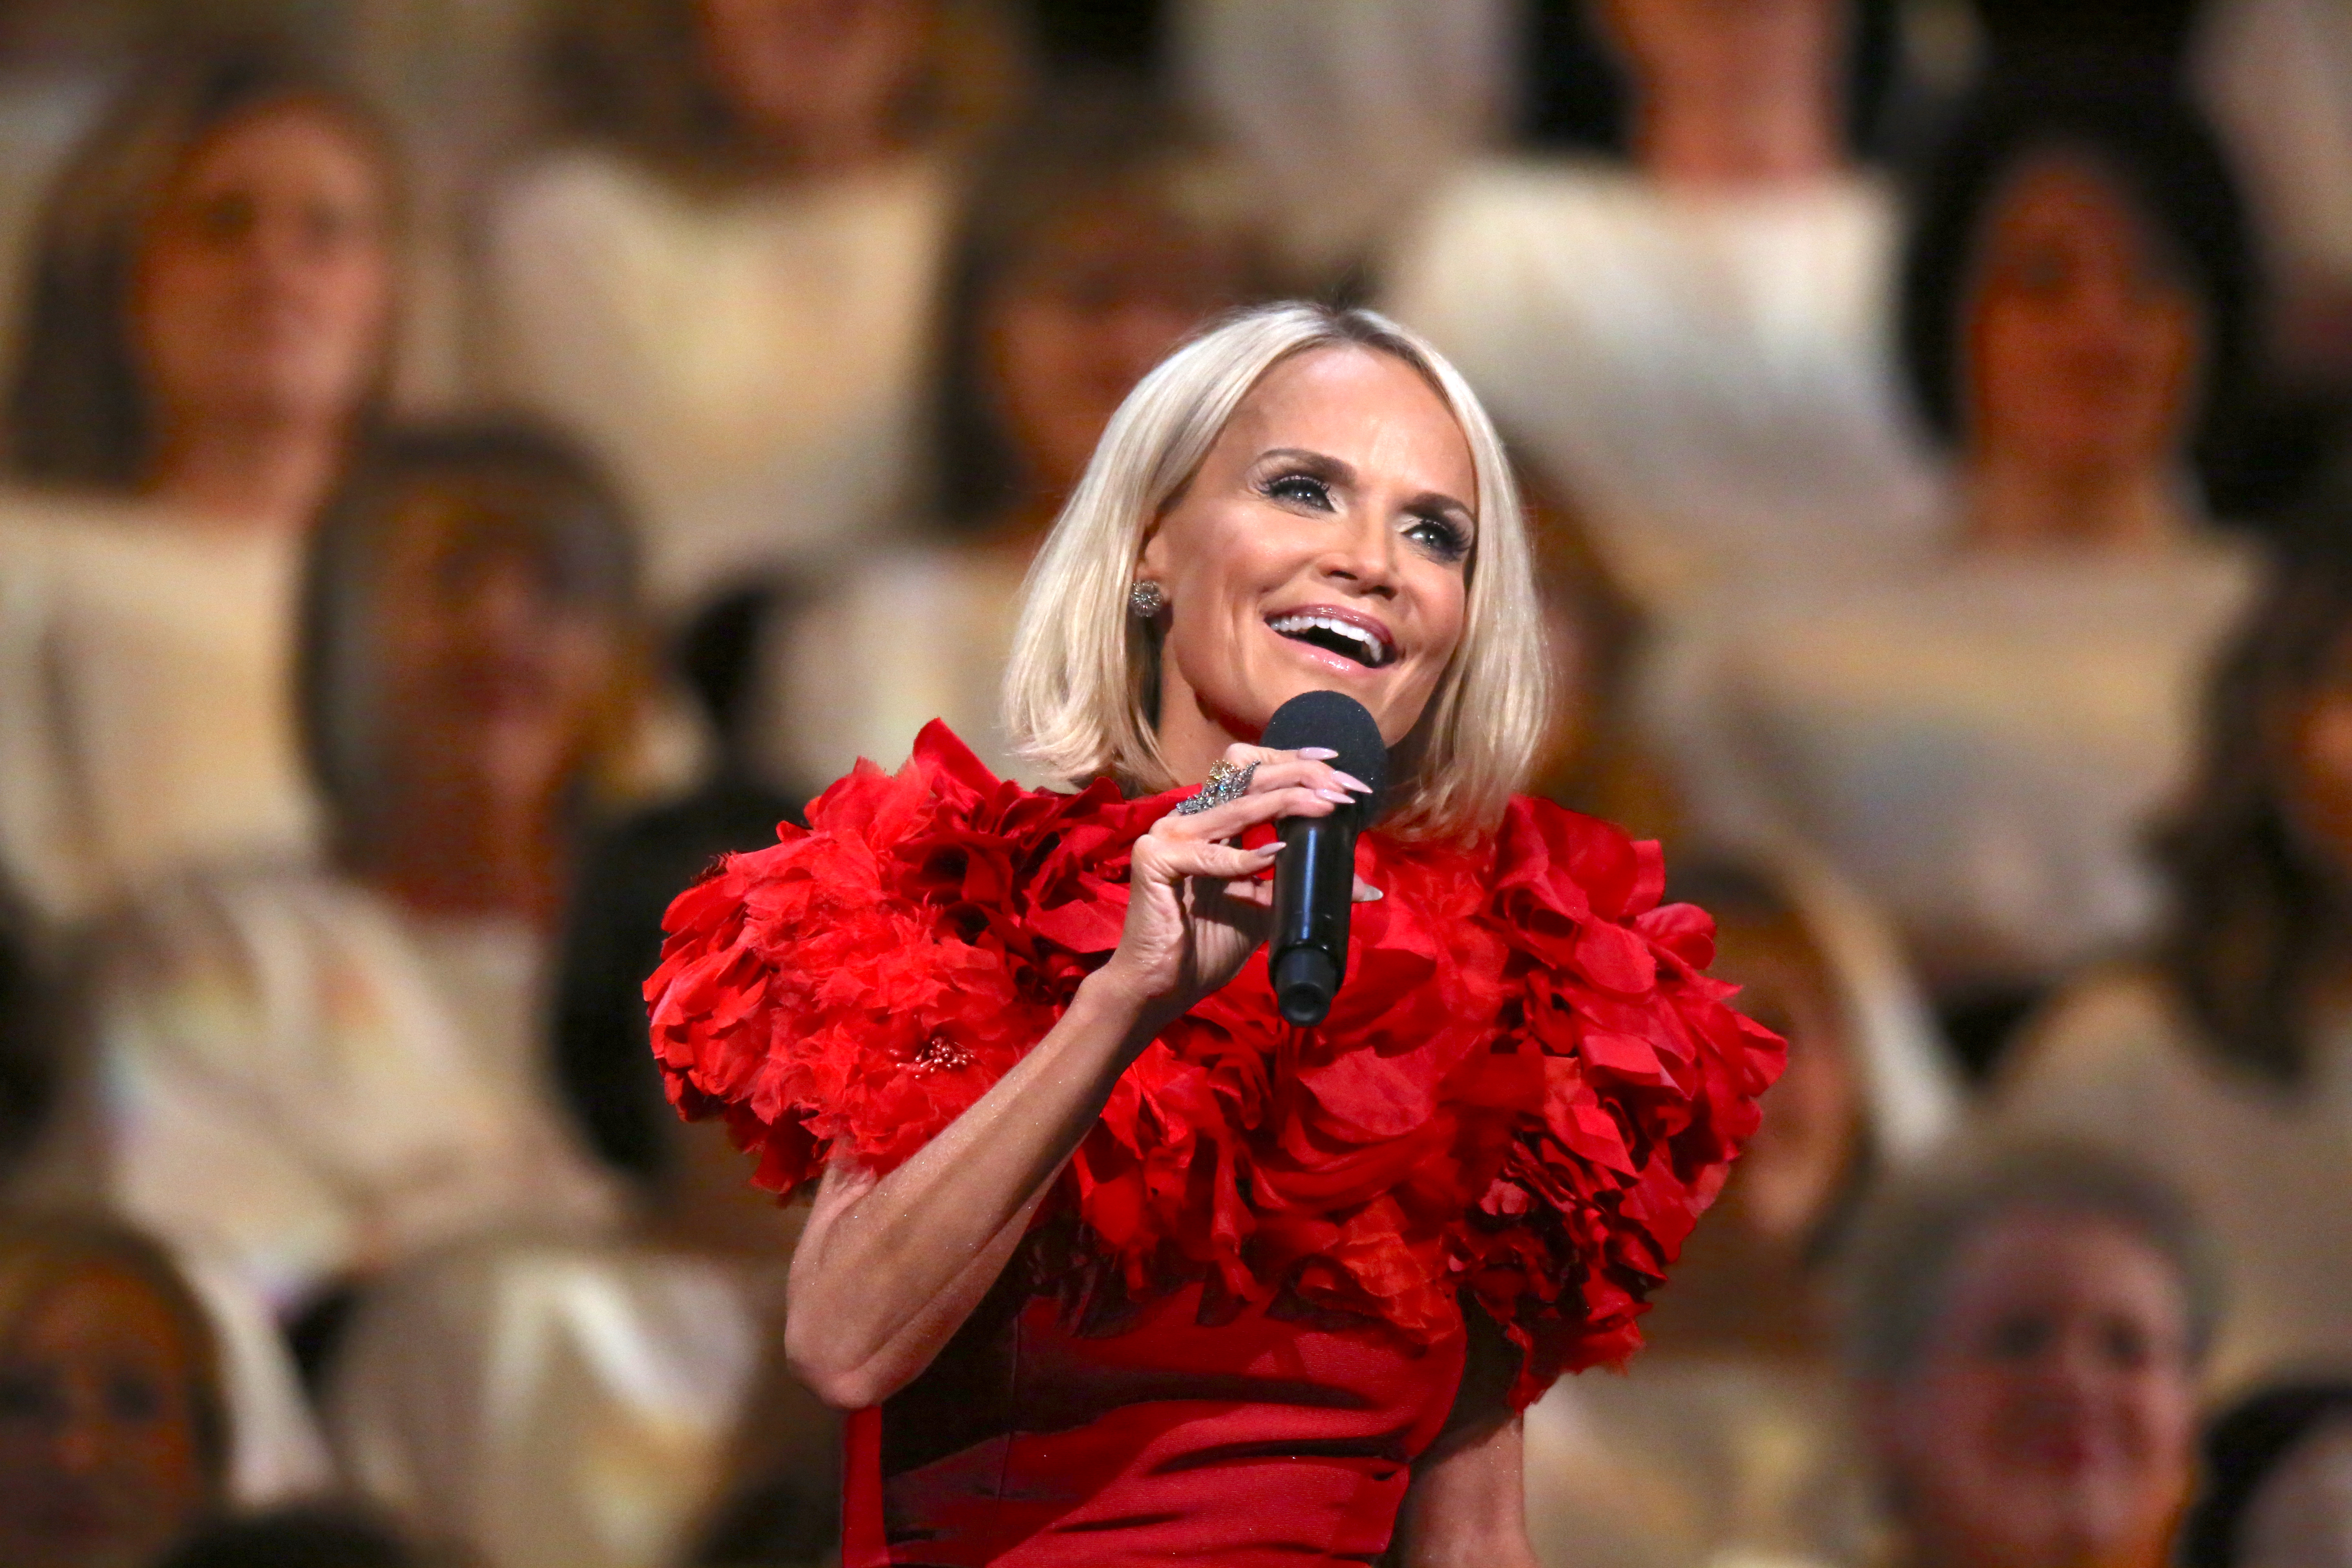 Jesus Calling podcast #174 - featuring Kristin Chenoweth singing here with the Brooklyn Tabernacle Choir's Christmas special